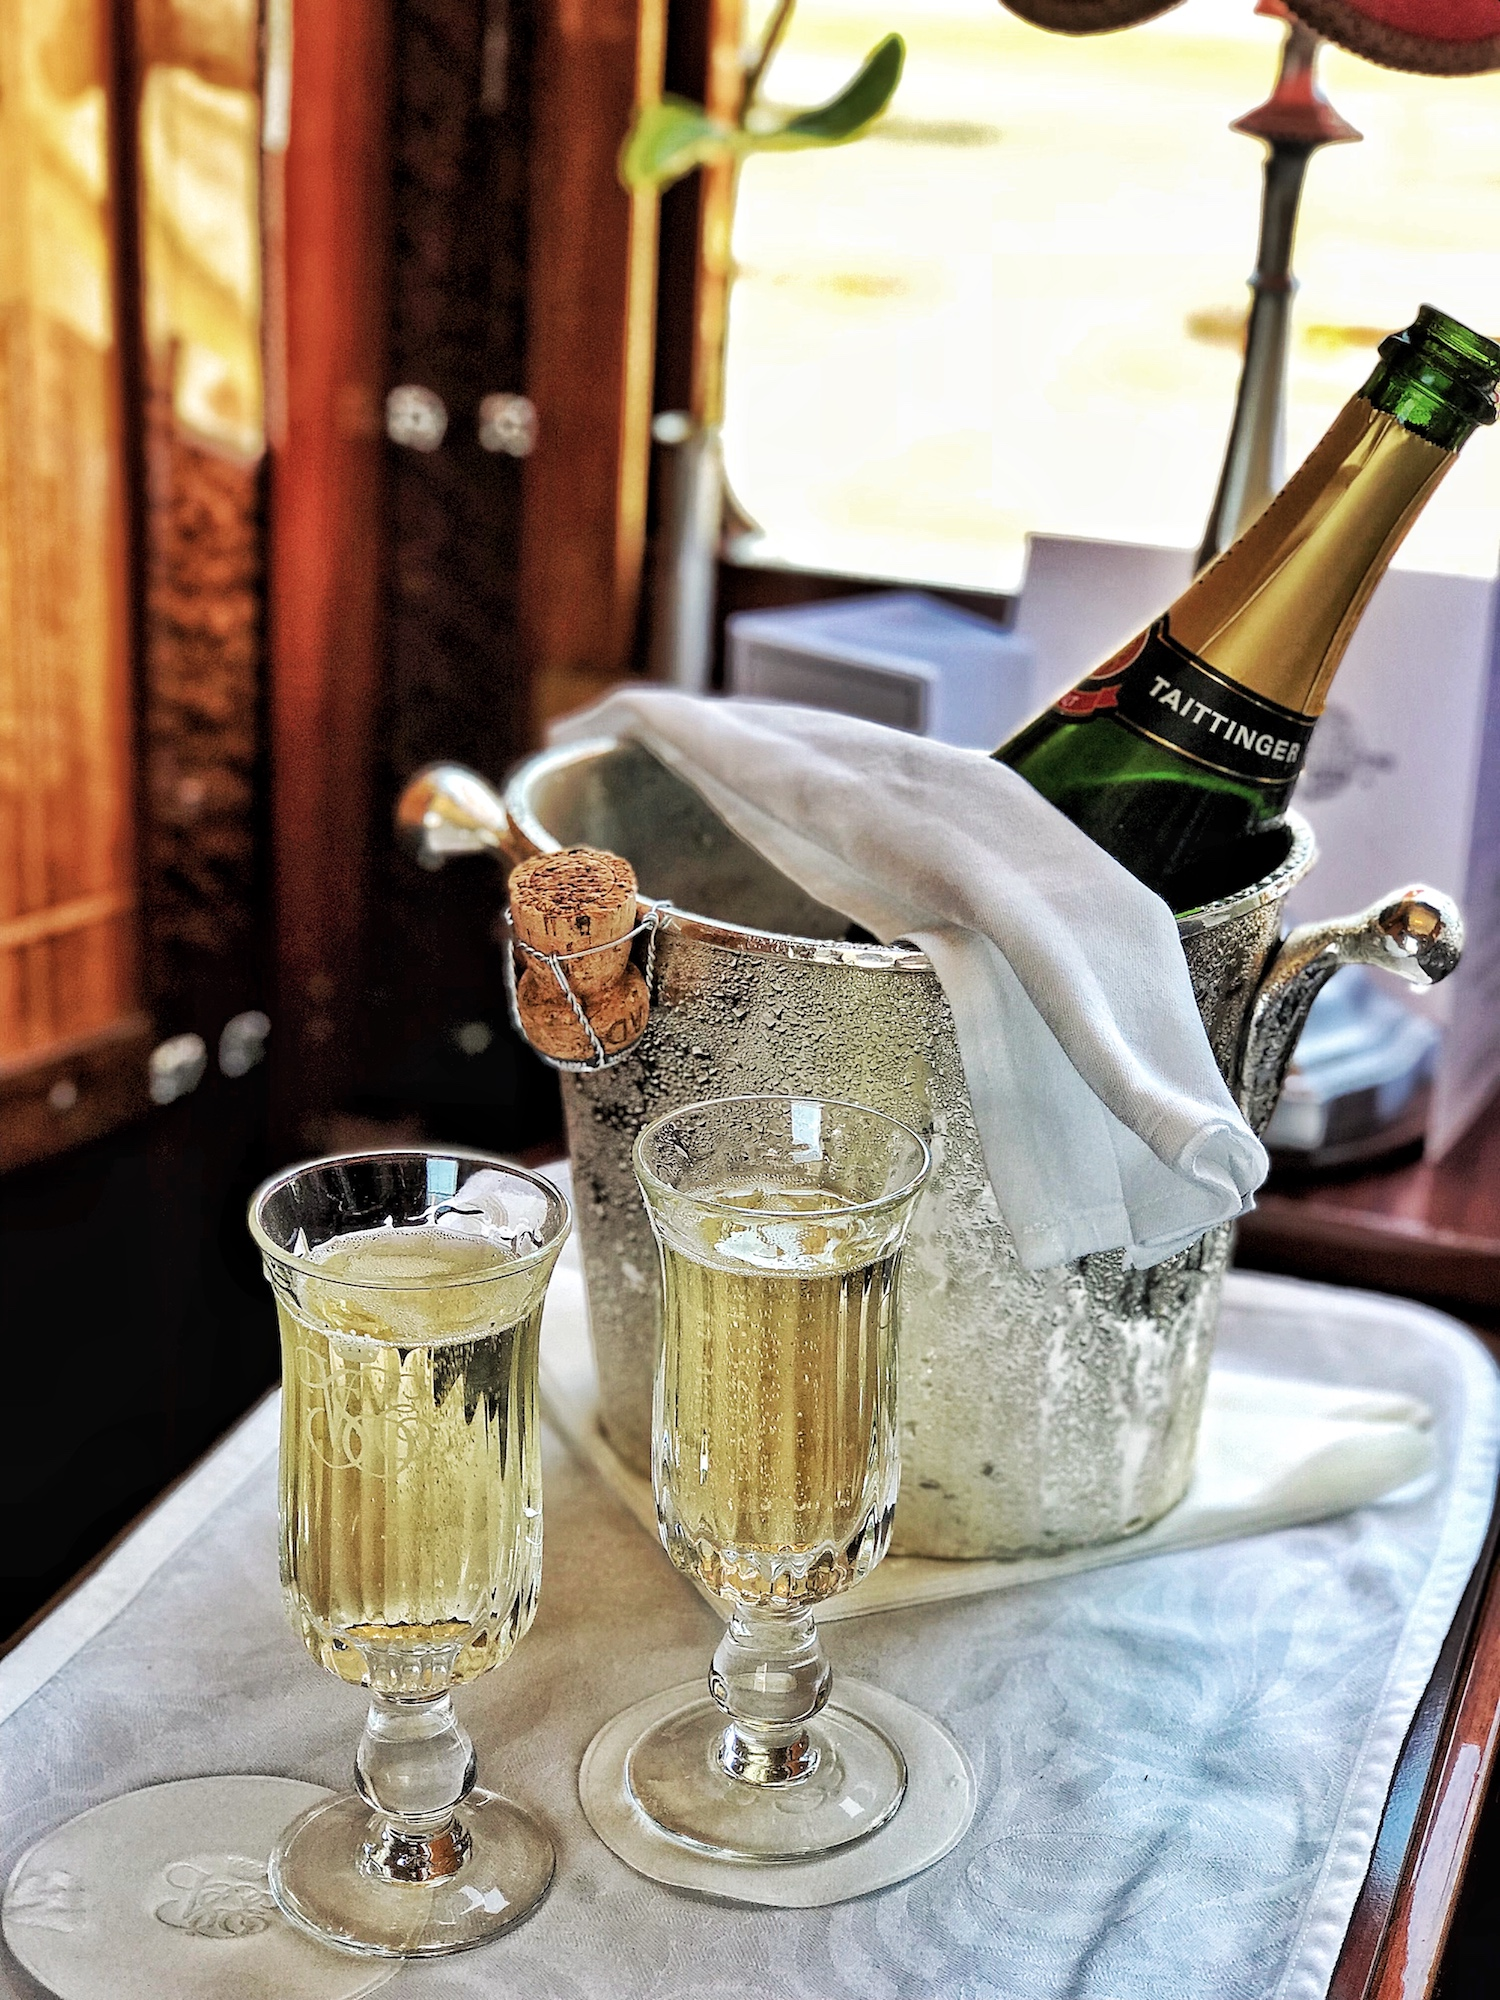 champagne aboard the Orient Express.